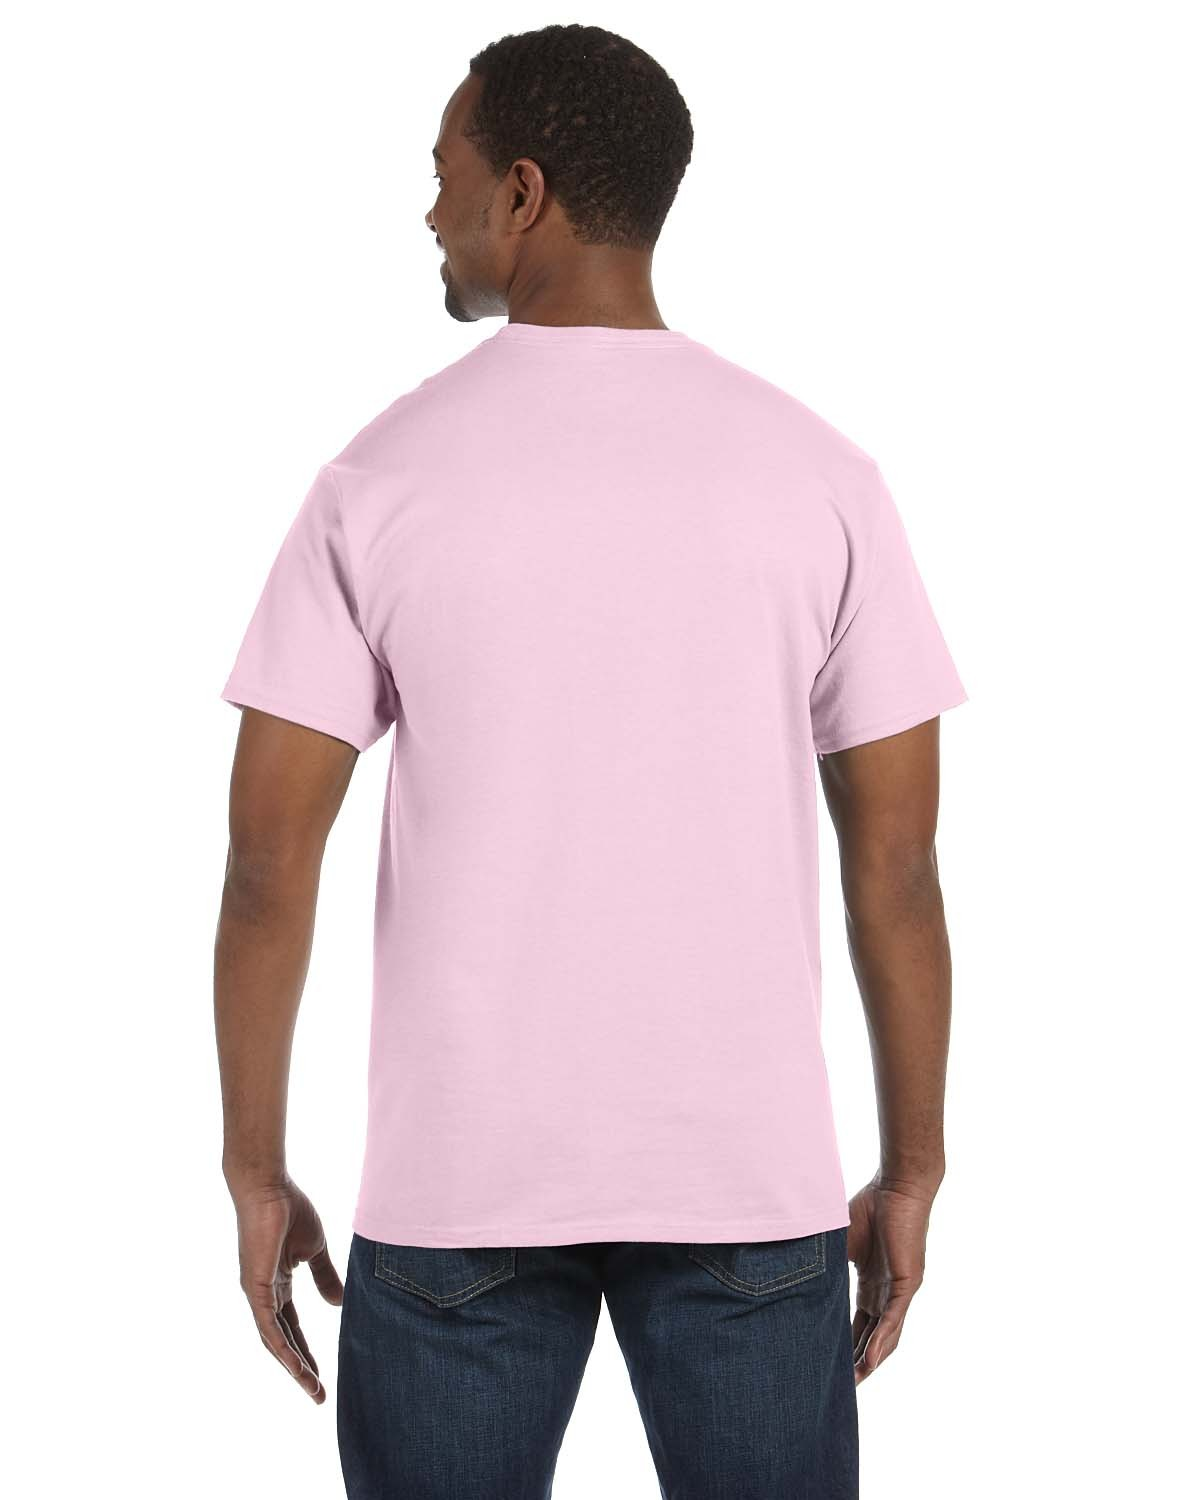 5250T Hanes PALE PINK